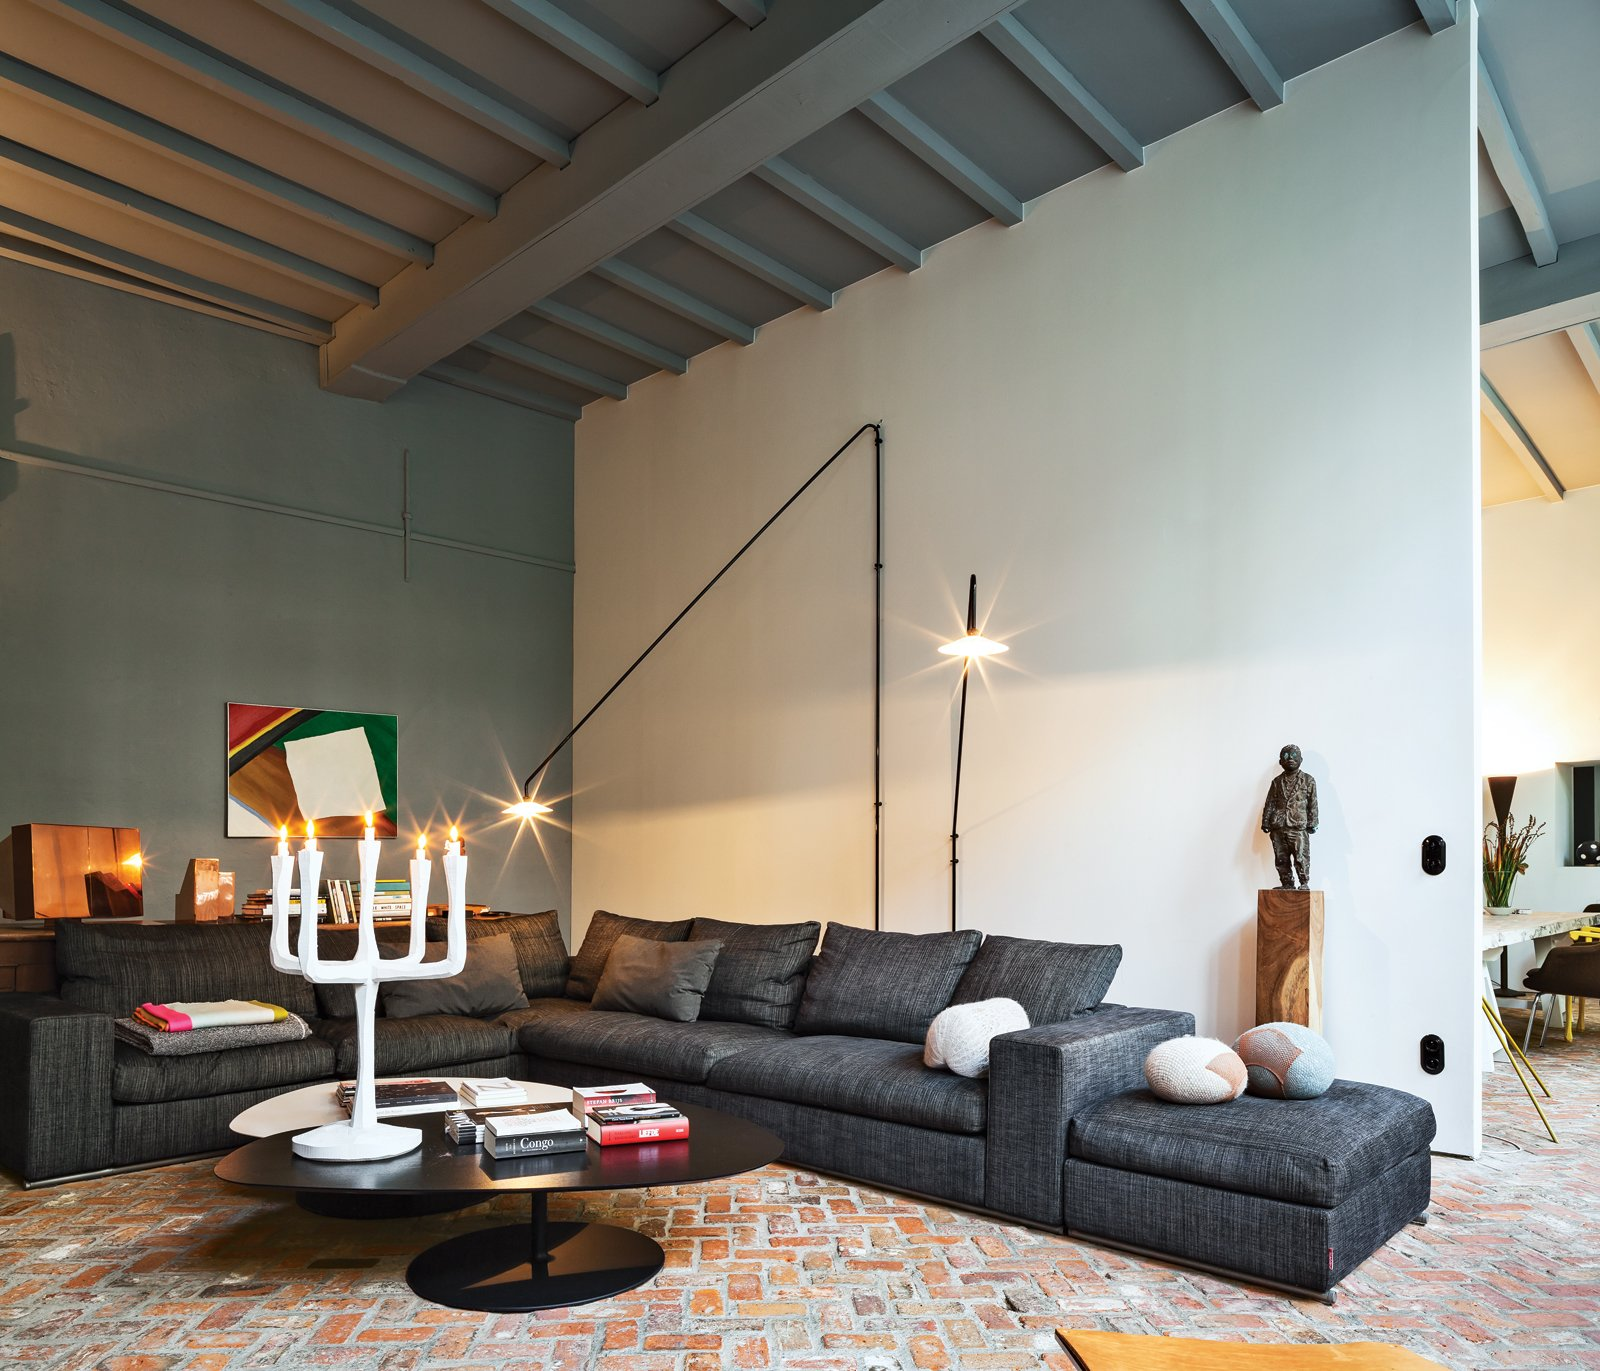 Living Room, Brick Floor, Sofa, Sectional, Floor Lighting, and Table Lighting The room also contains a sofa by Flexform, cushions from textile firm Chevalier Masson, a Jens Fager candelabra, and a painting by Roger Raveel.  Living Rooms from An Eclectic Living Room in Antwerp